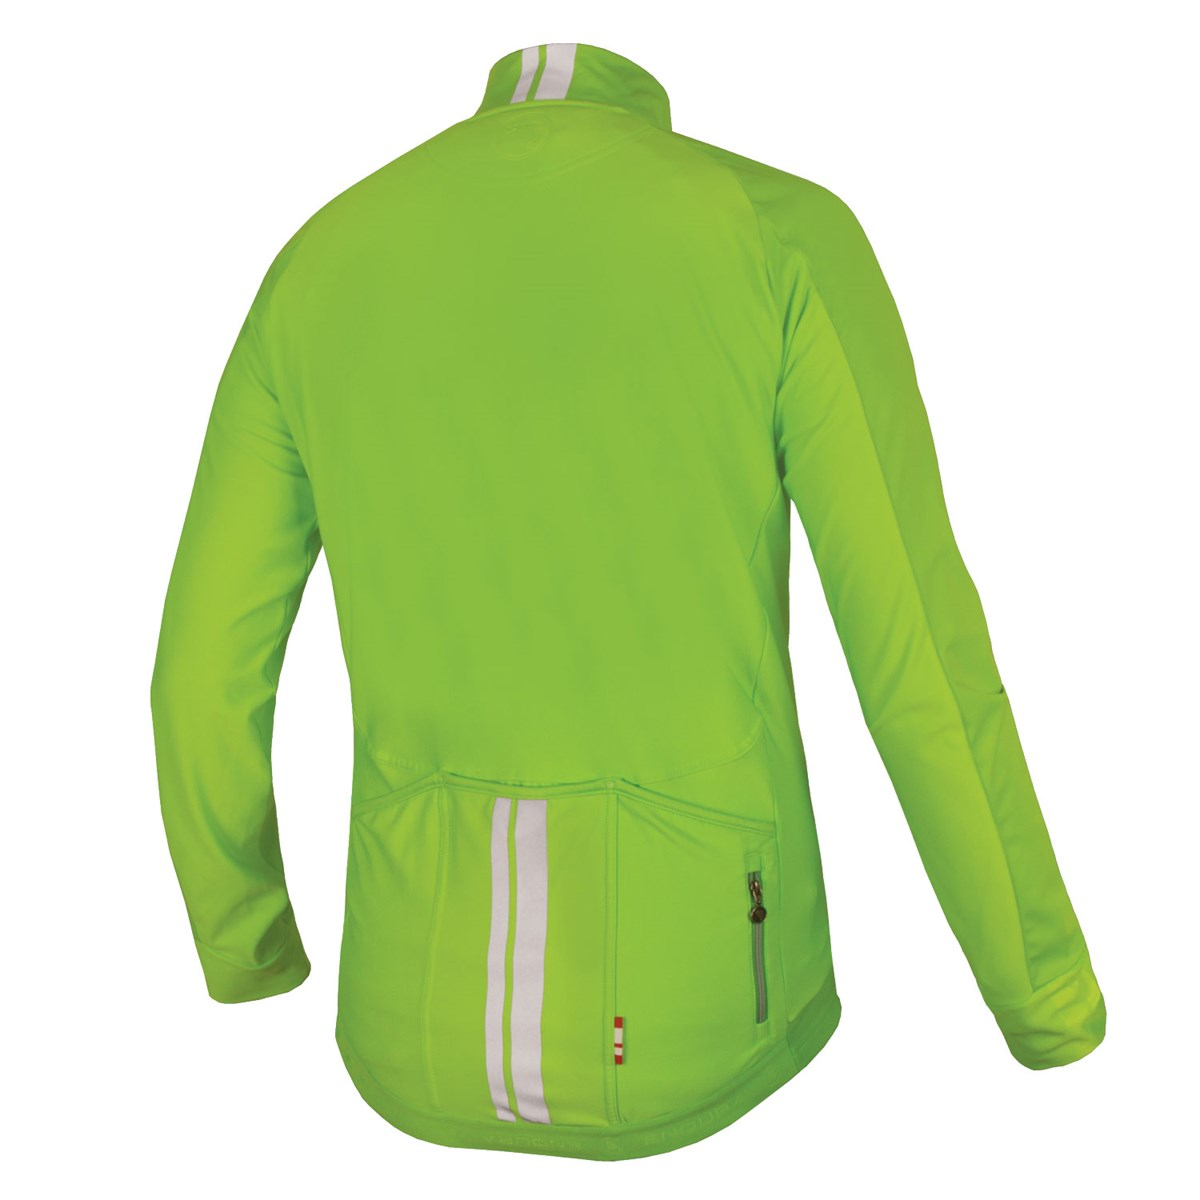 b35bebada Endura FS260-Pro Jetstream Long Sleeve Hi-Viz Green Cycling Jersey ...